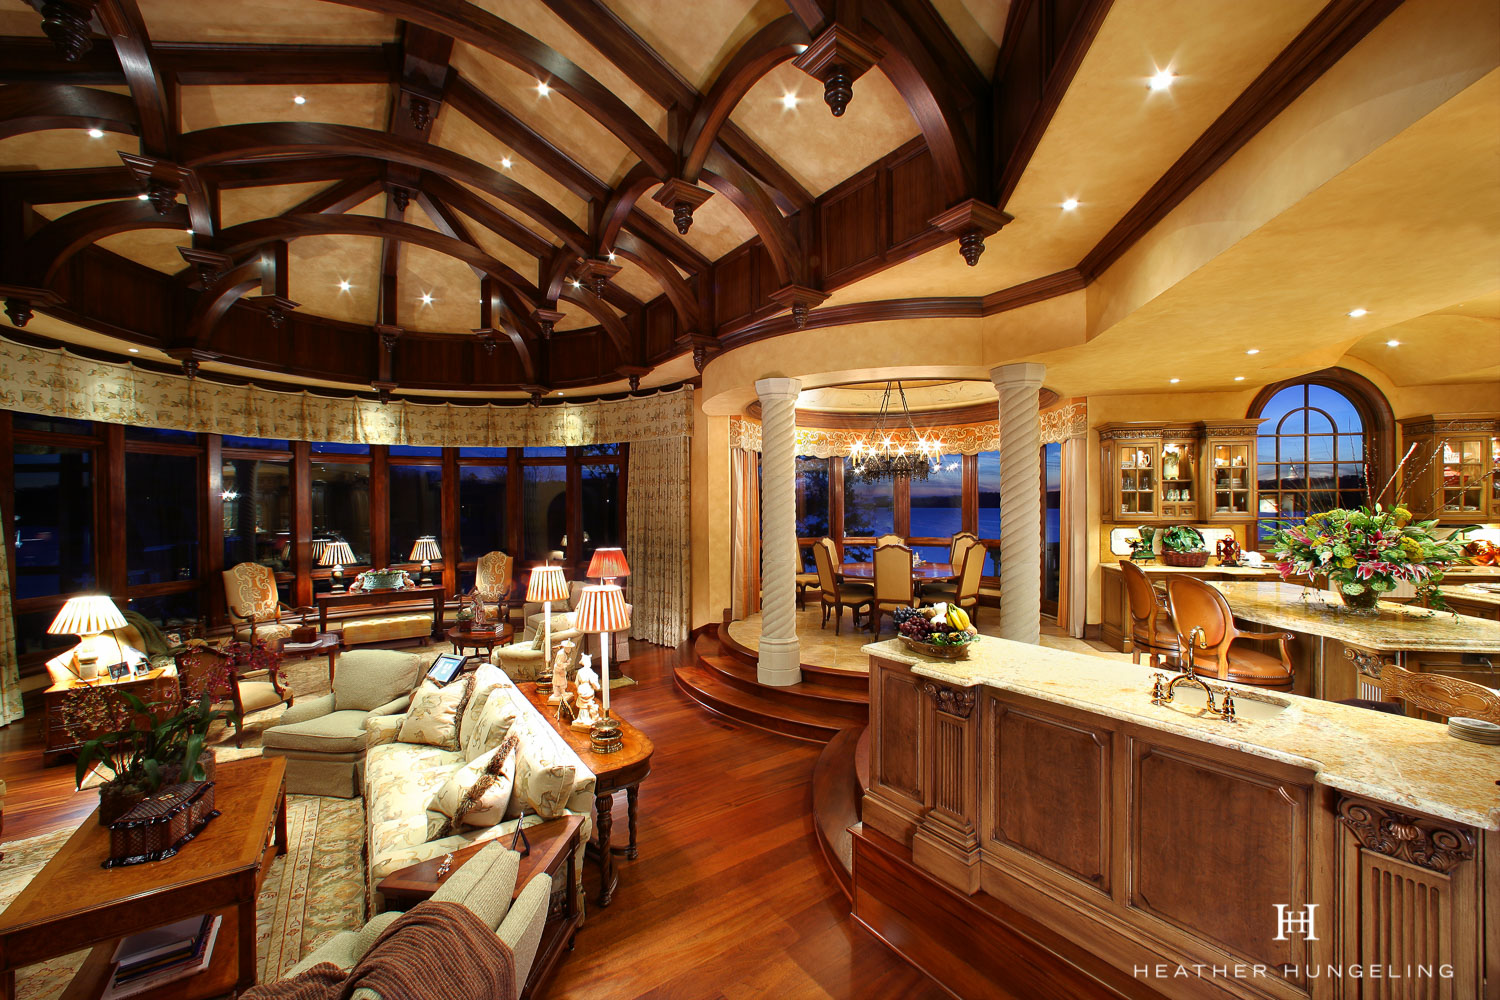 This amazing Tuscan kitchen overlooks a Great Room with a vaulted ceiling and beams.